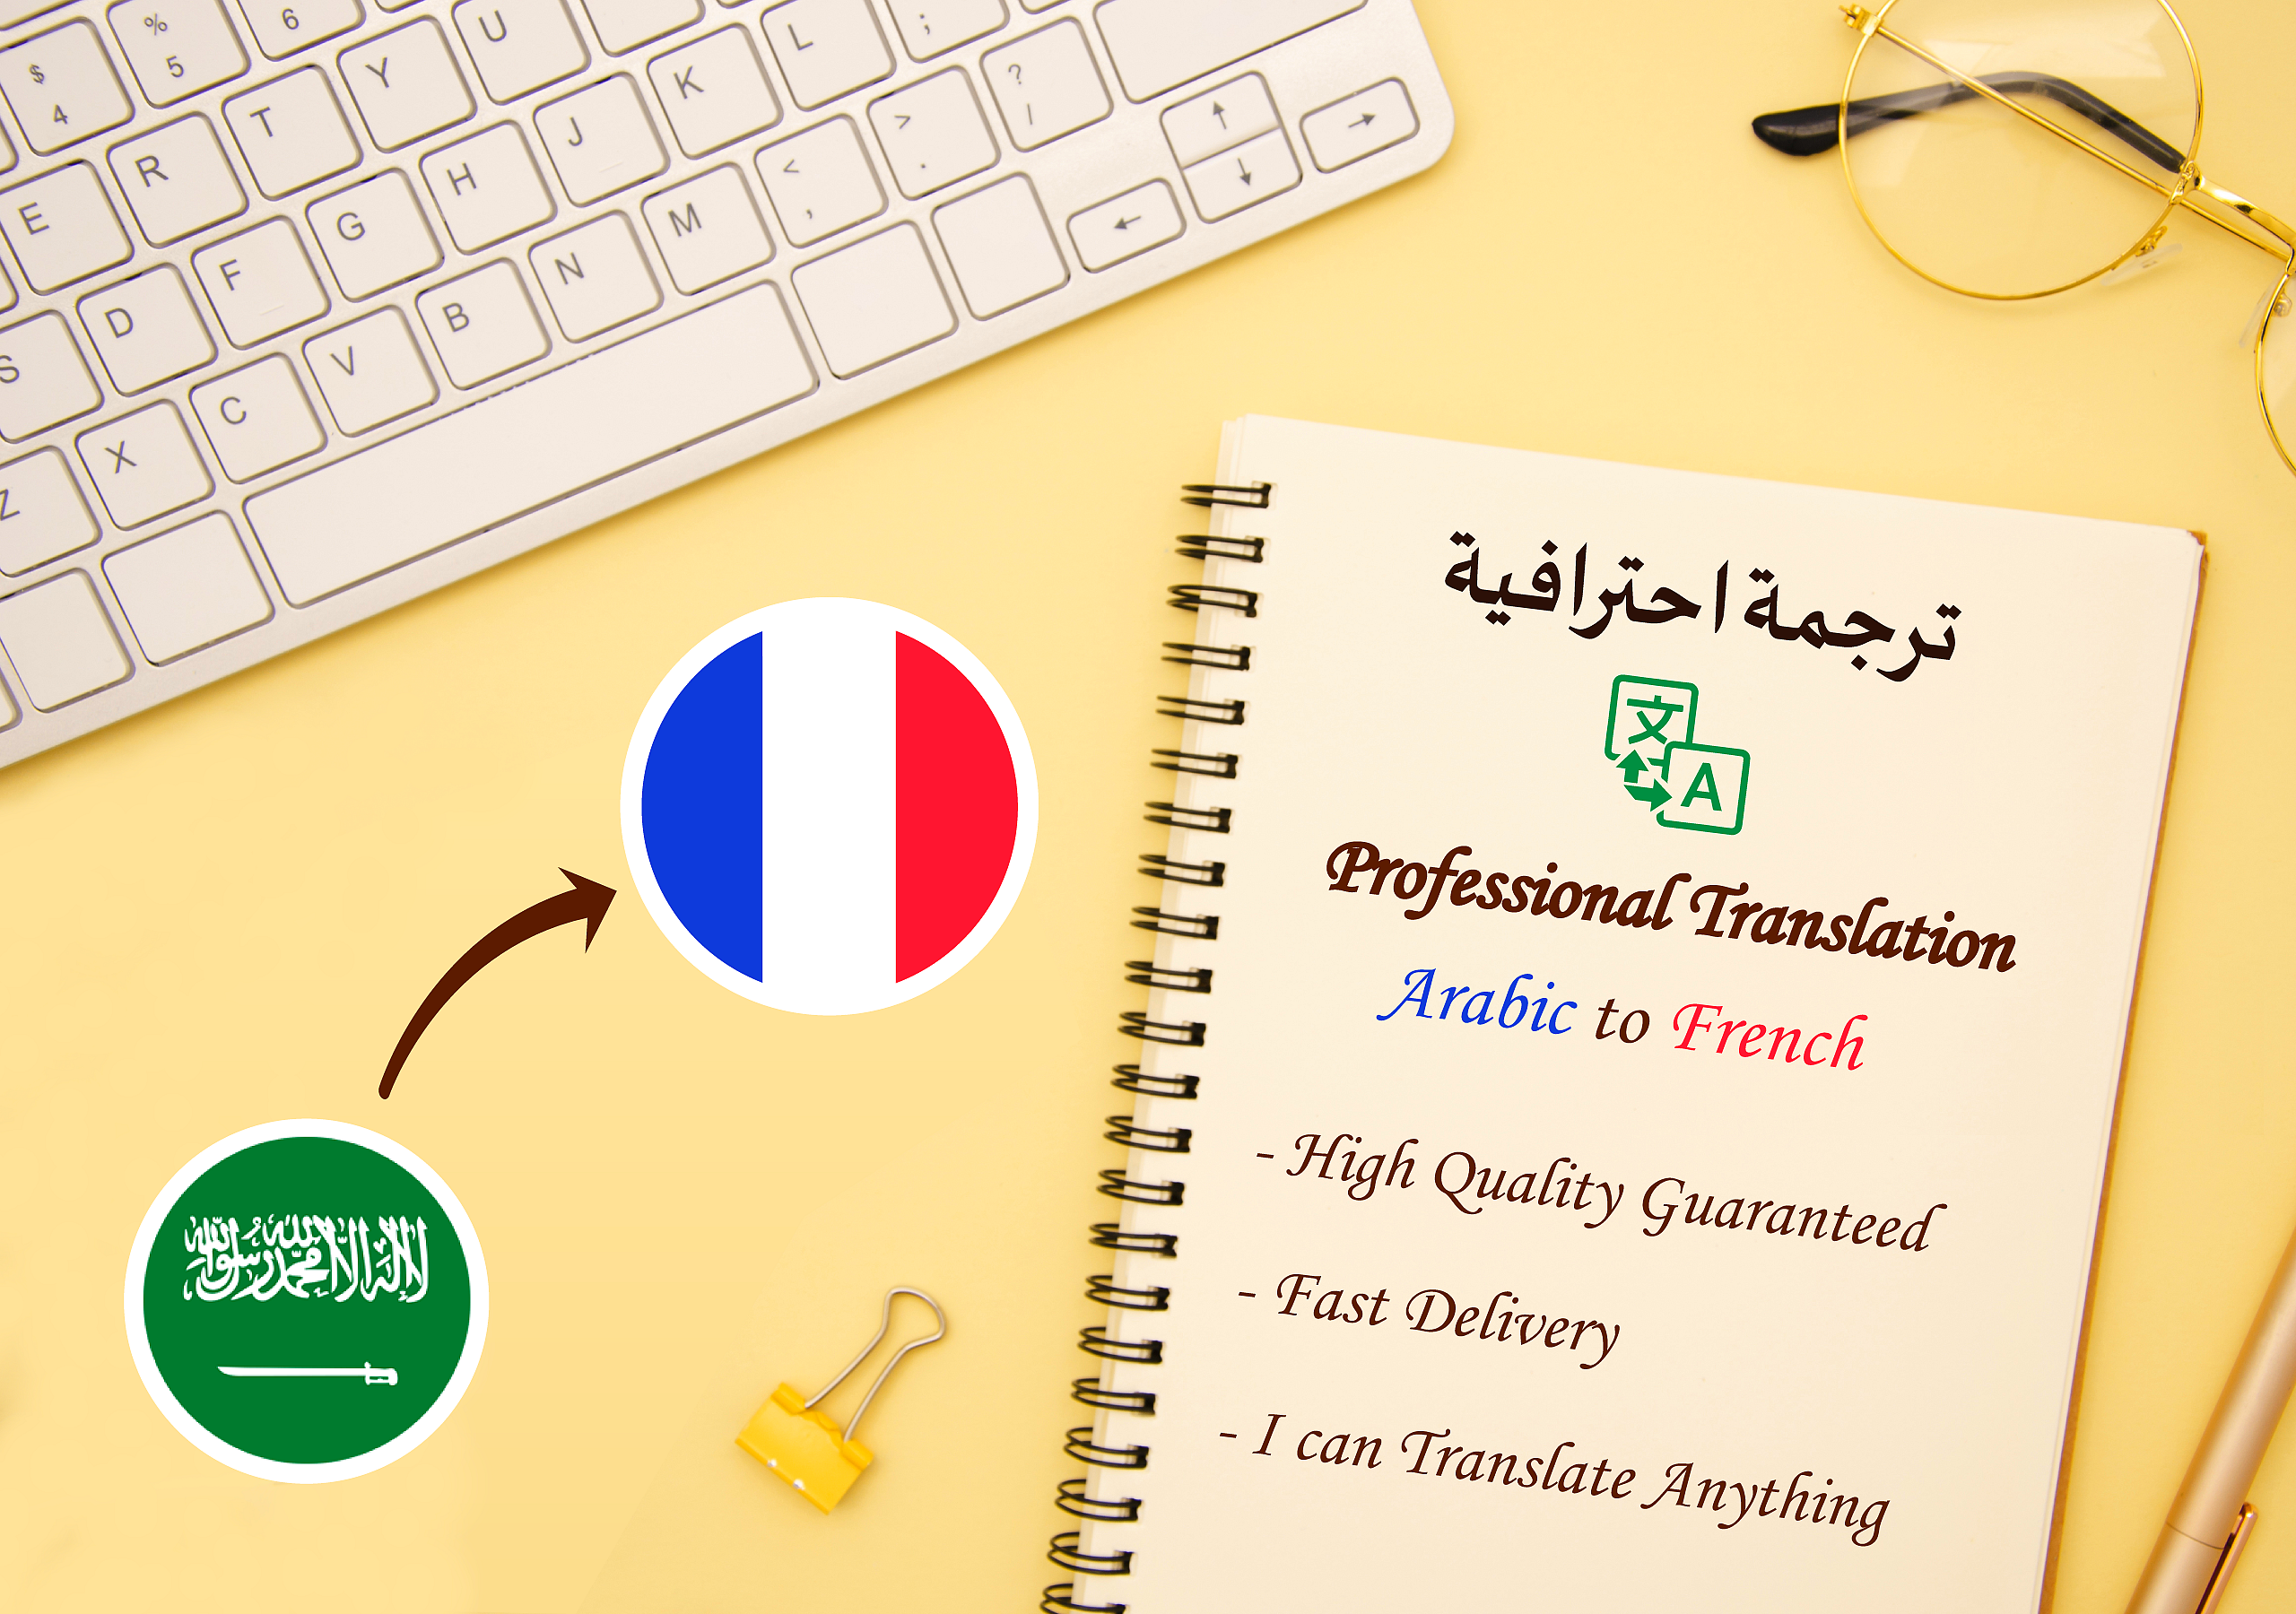 Translation from Arabic to French